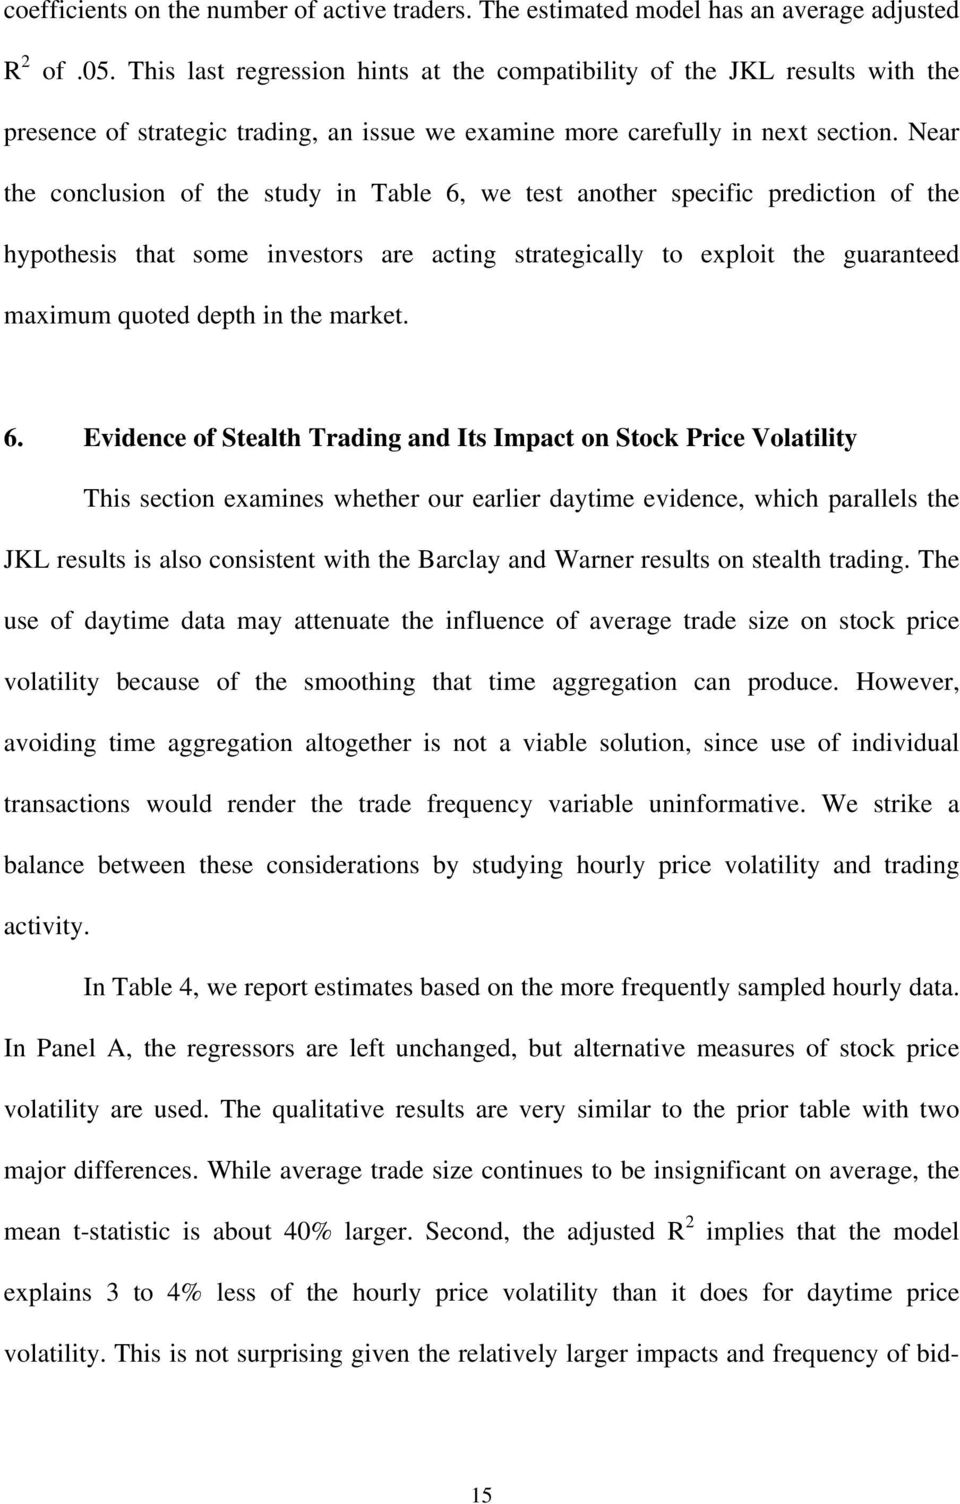 Near the conclusion of the study in Table 6, we test another specific prediction of the hypothesis that some investors are acting strategically to exploit the guaranteed maximum quoted depth in the